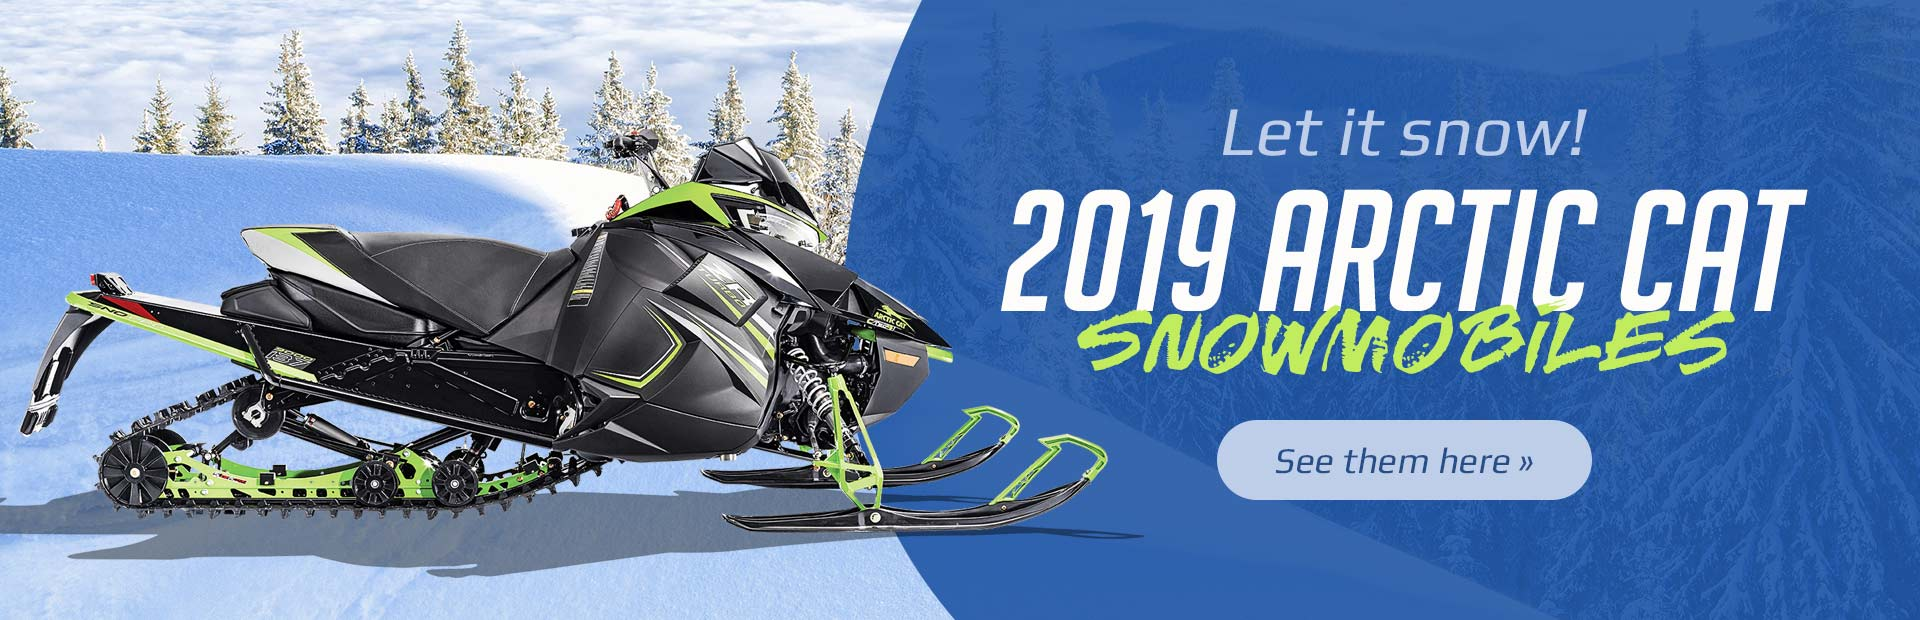 2019 Arctic Cat Snowmobiles: Click here to view the models.